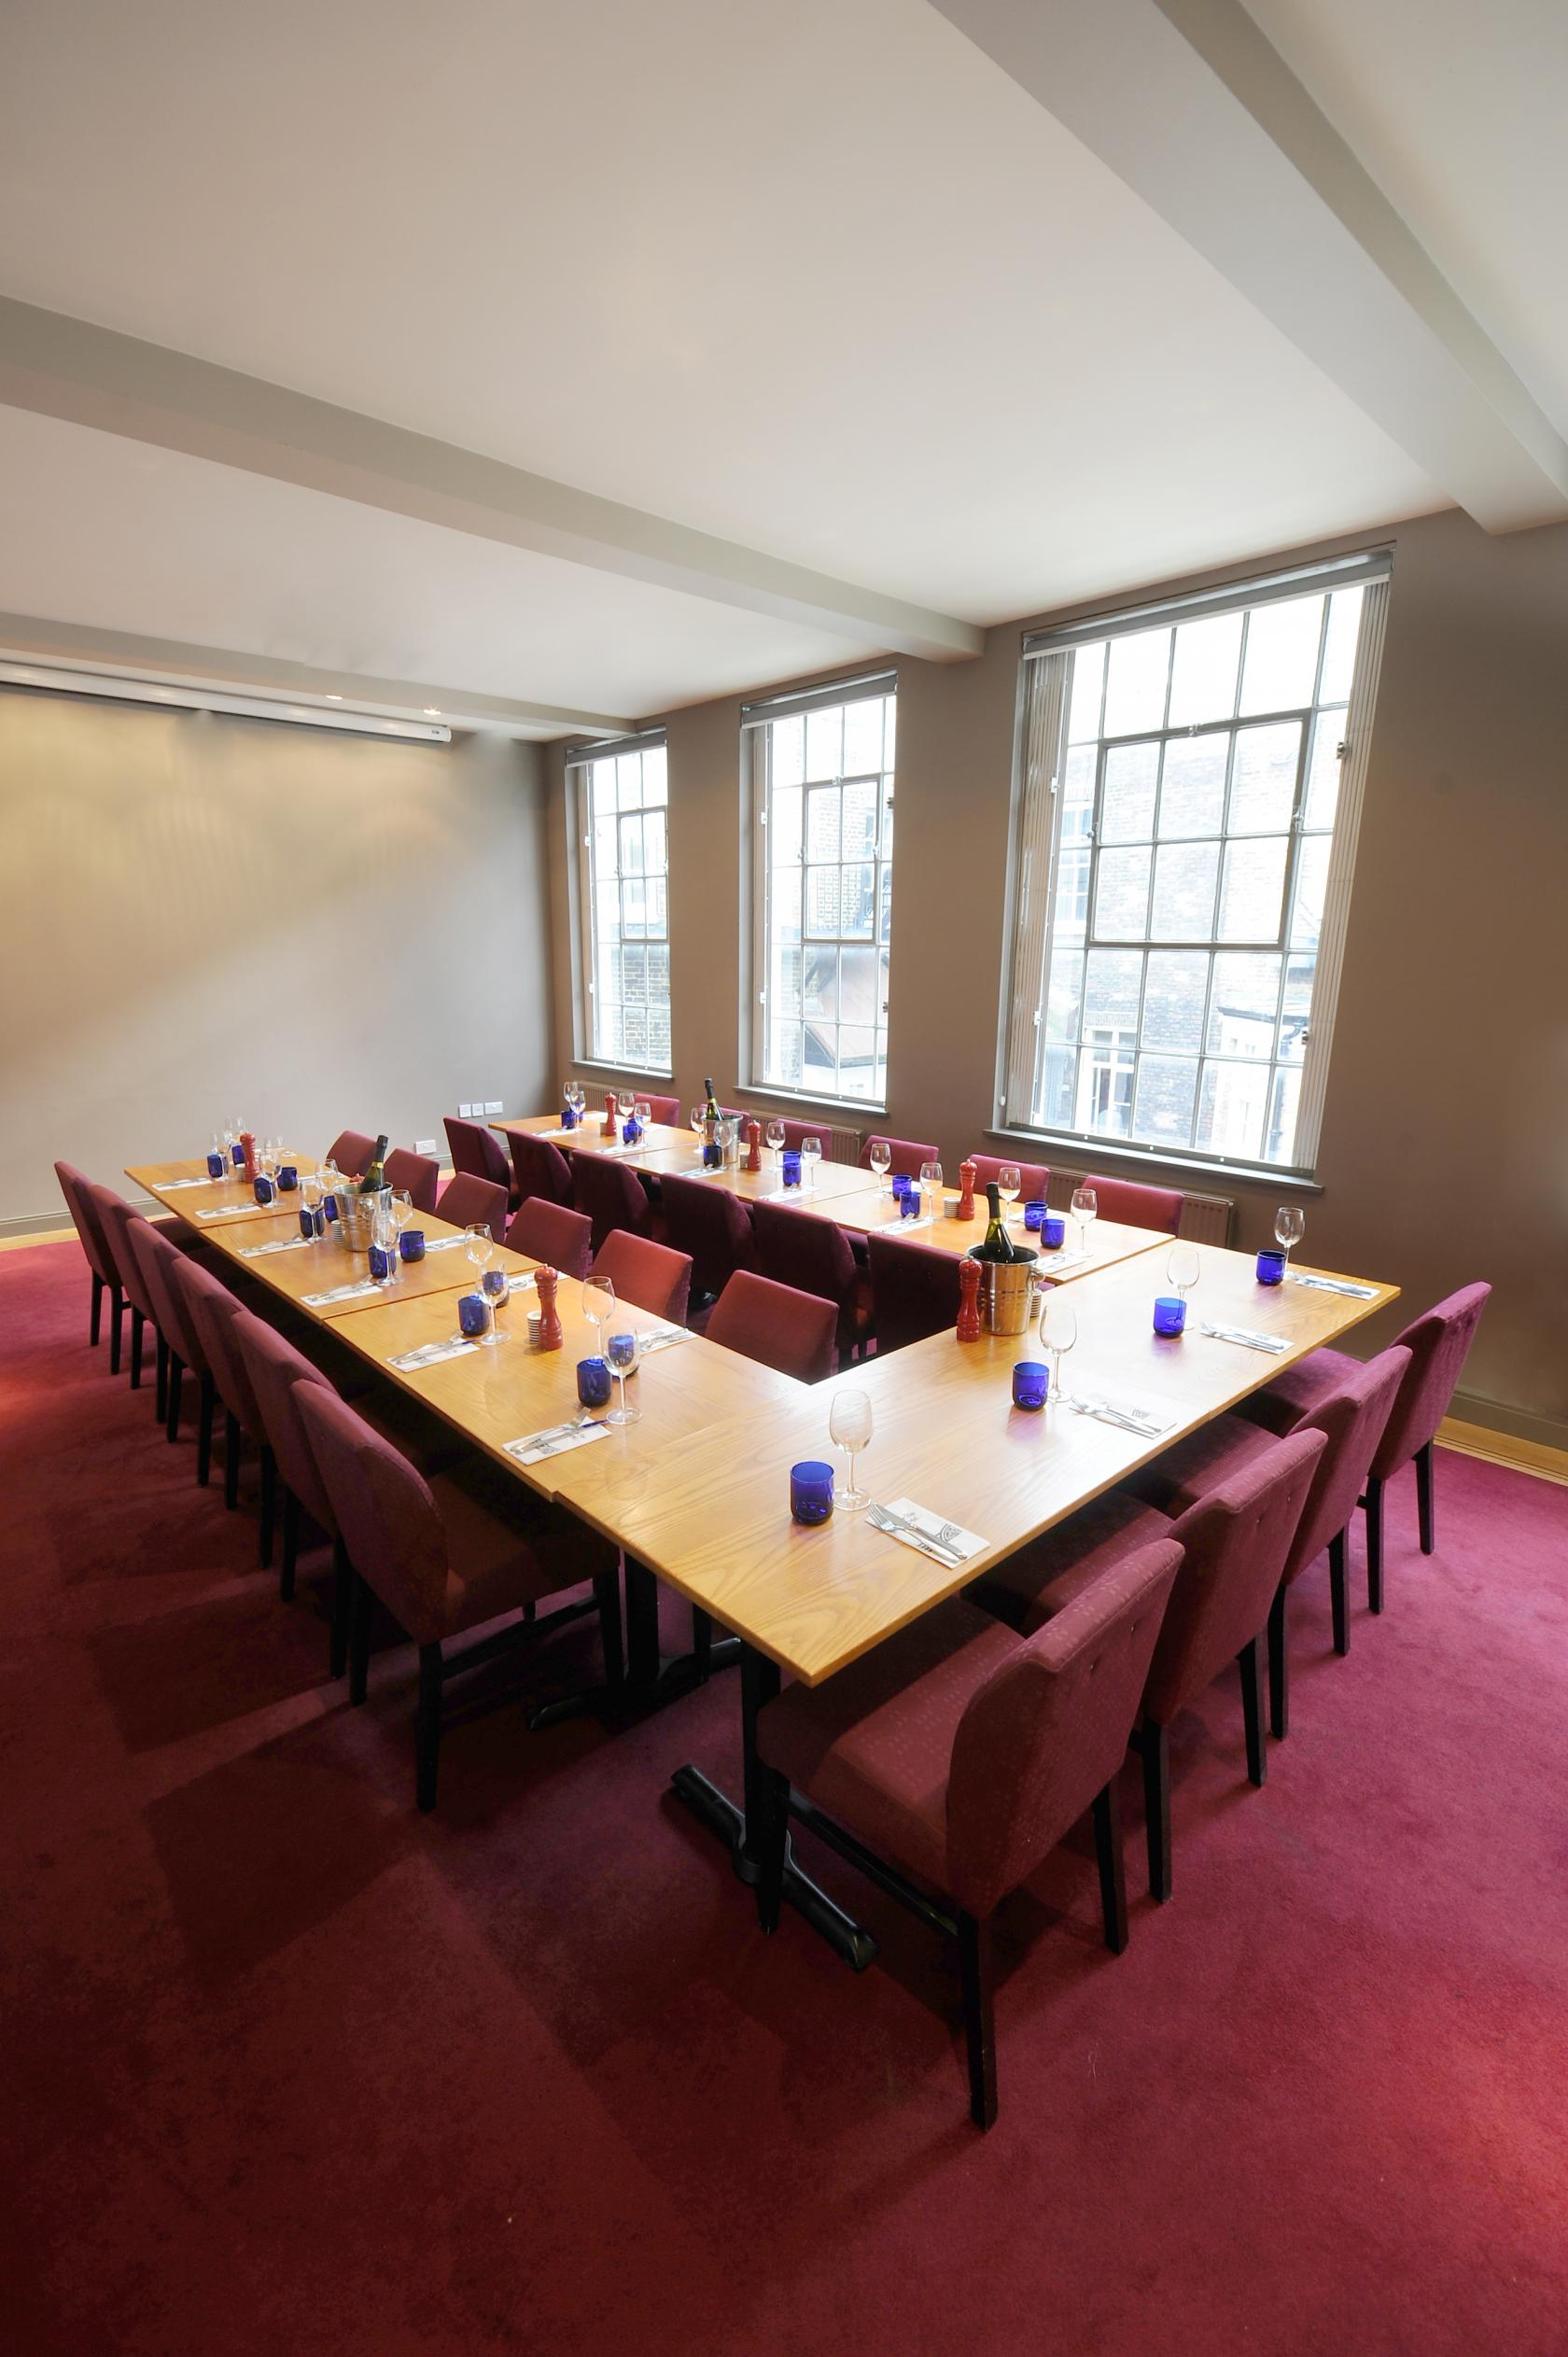 Book second floor dining room at pizzaexpress bruton place for Best private dining rooms central london